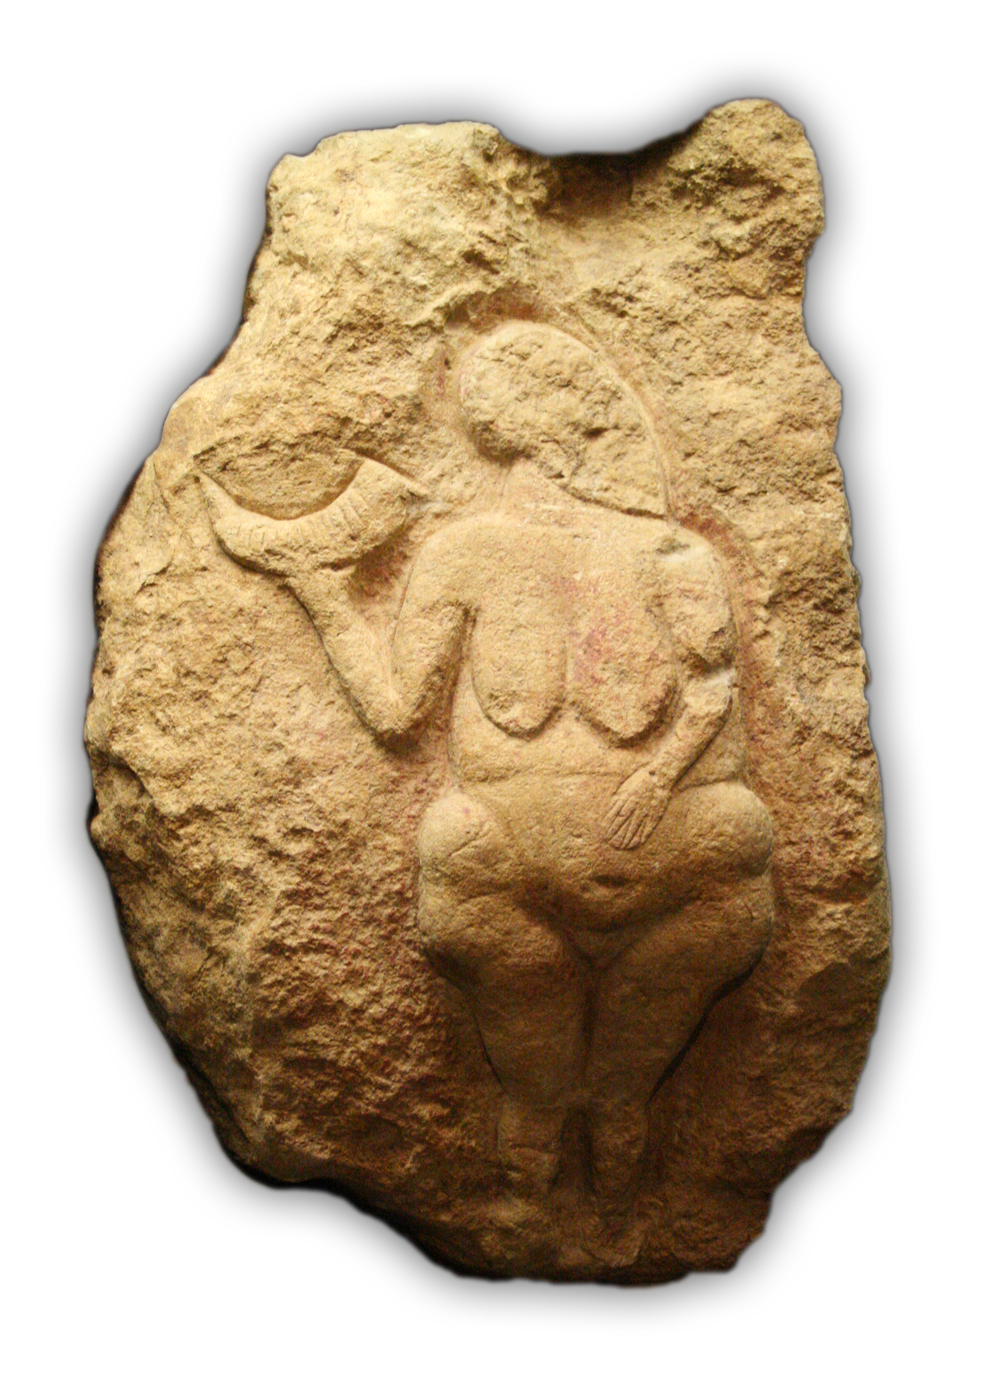 Venus of Laussel holding horn with 13 notches, marking the moon and mense